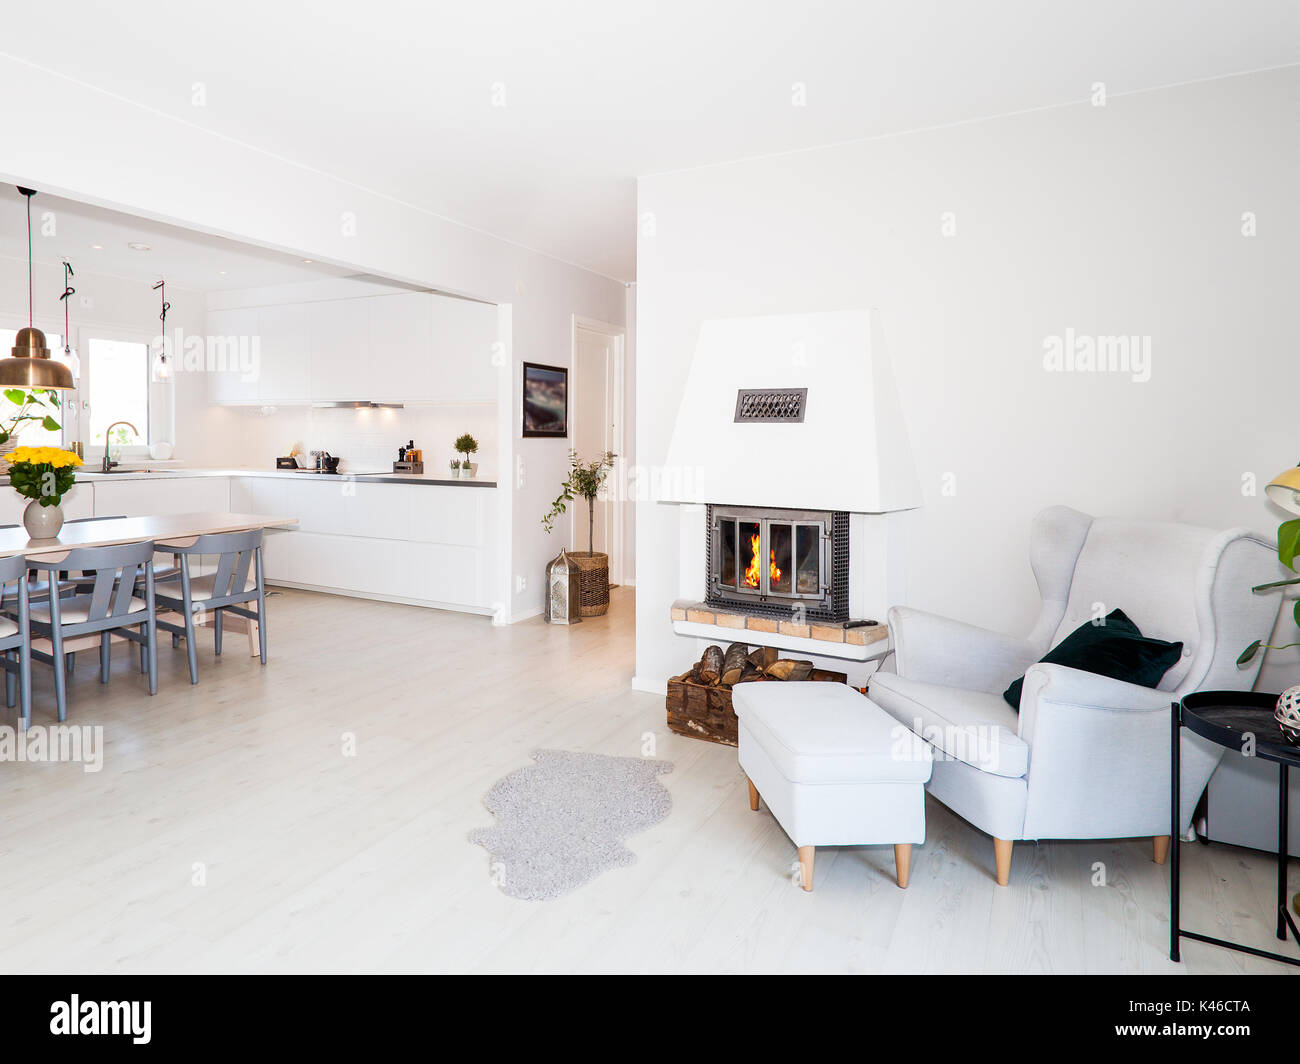 fancy livingroom with lit fire in the fireplace and the kitchen in teh background - Stock Image